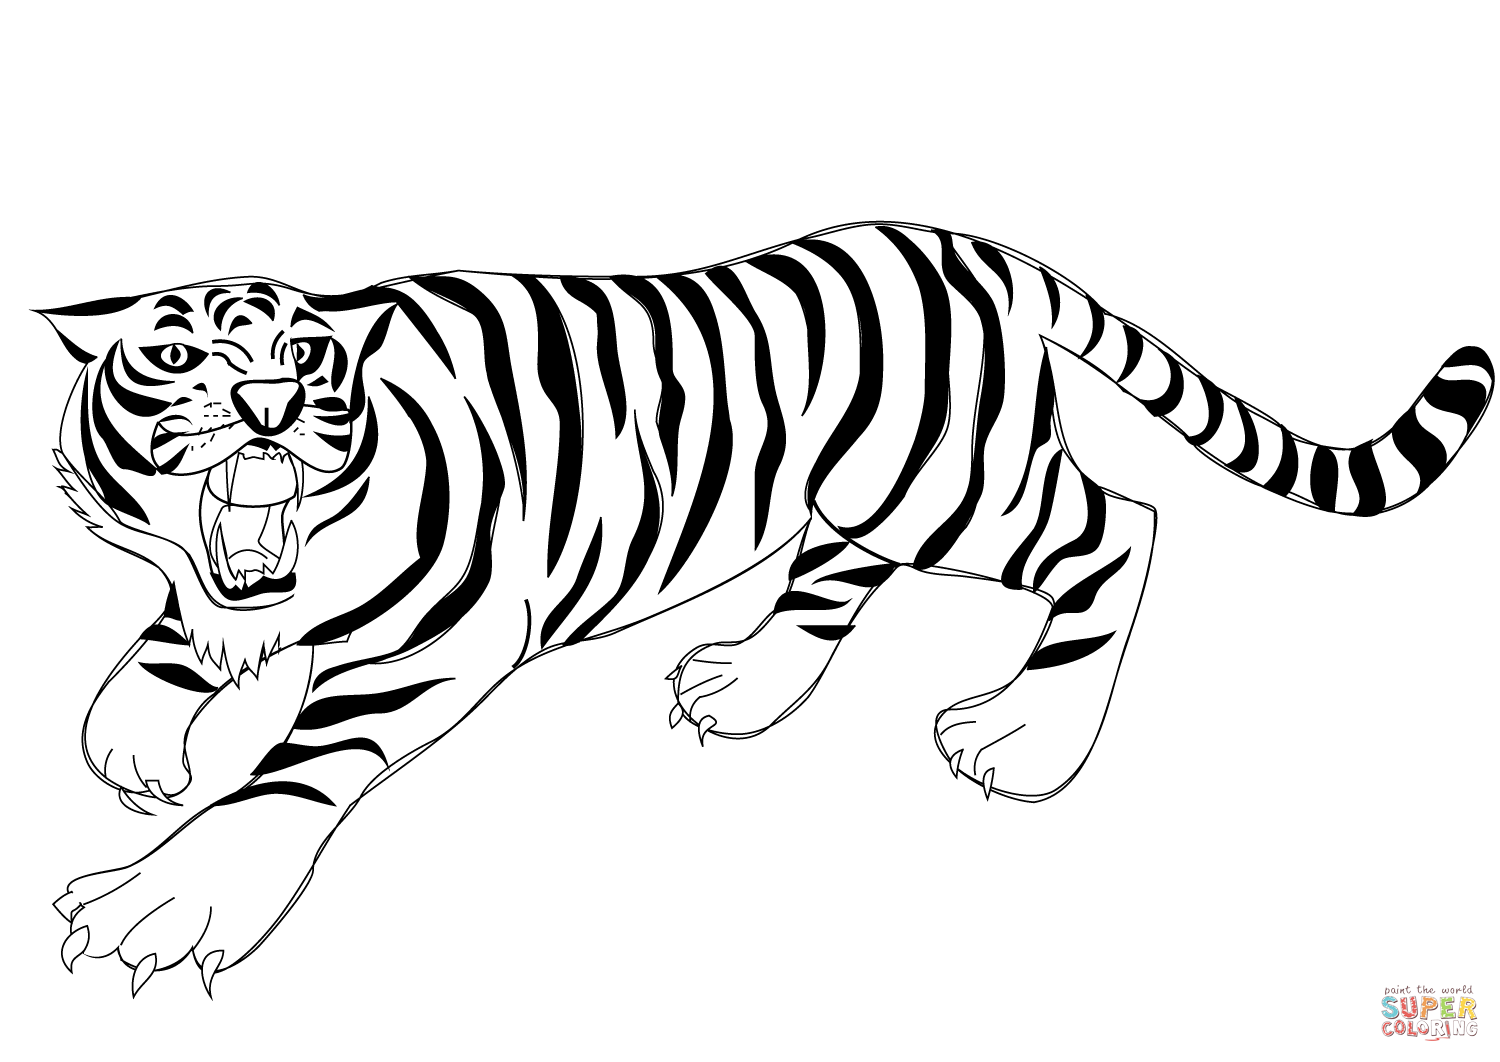 coloring picture of tiger tiger coloring page free printable coloring pages of picture coloring tiger